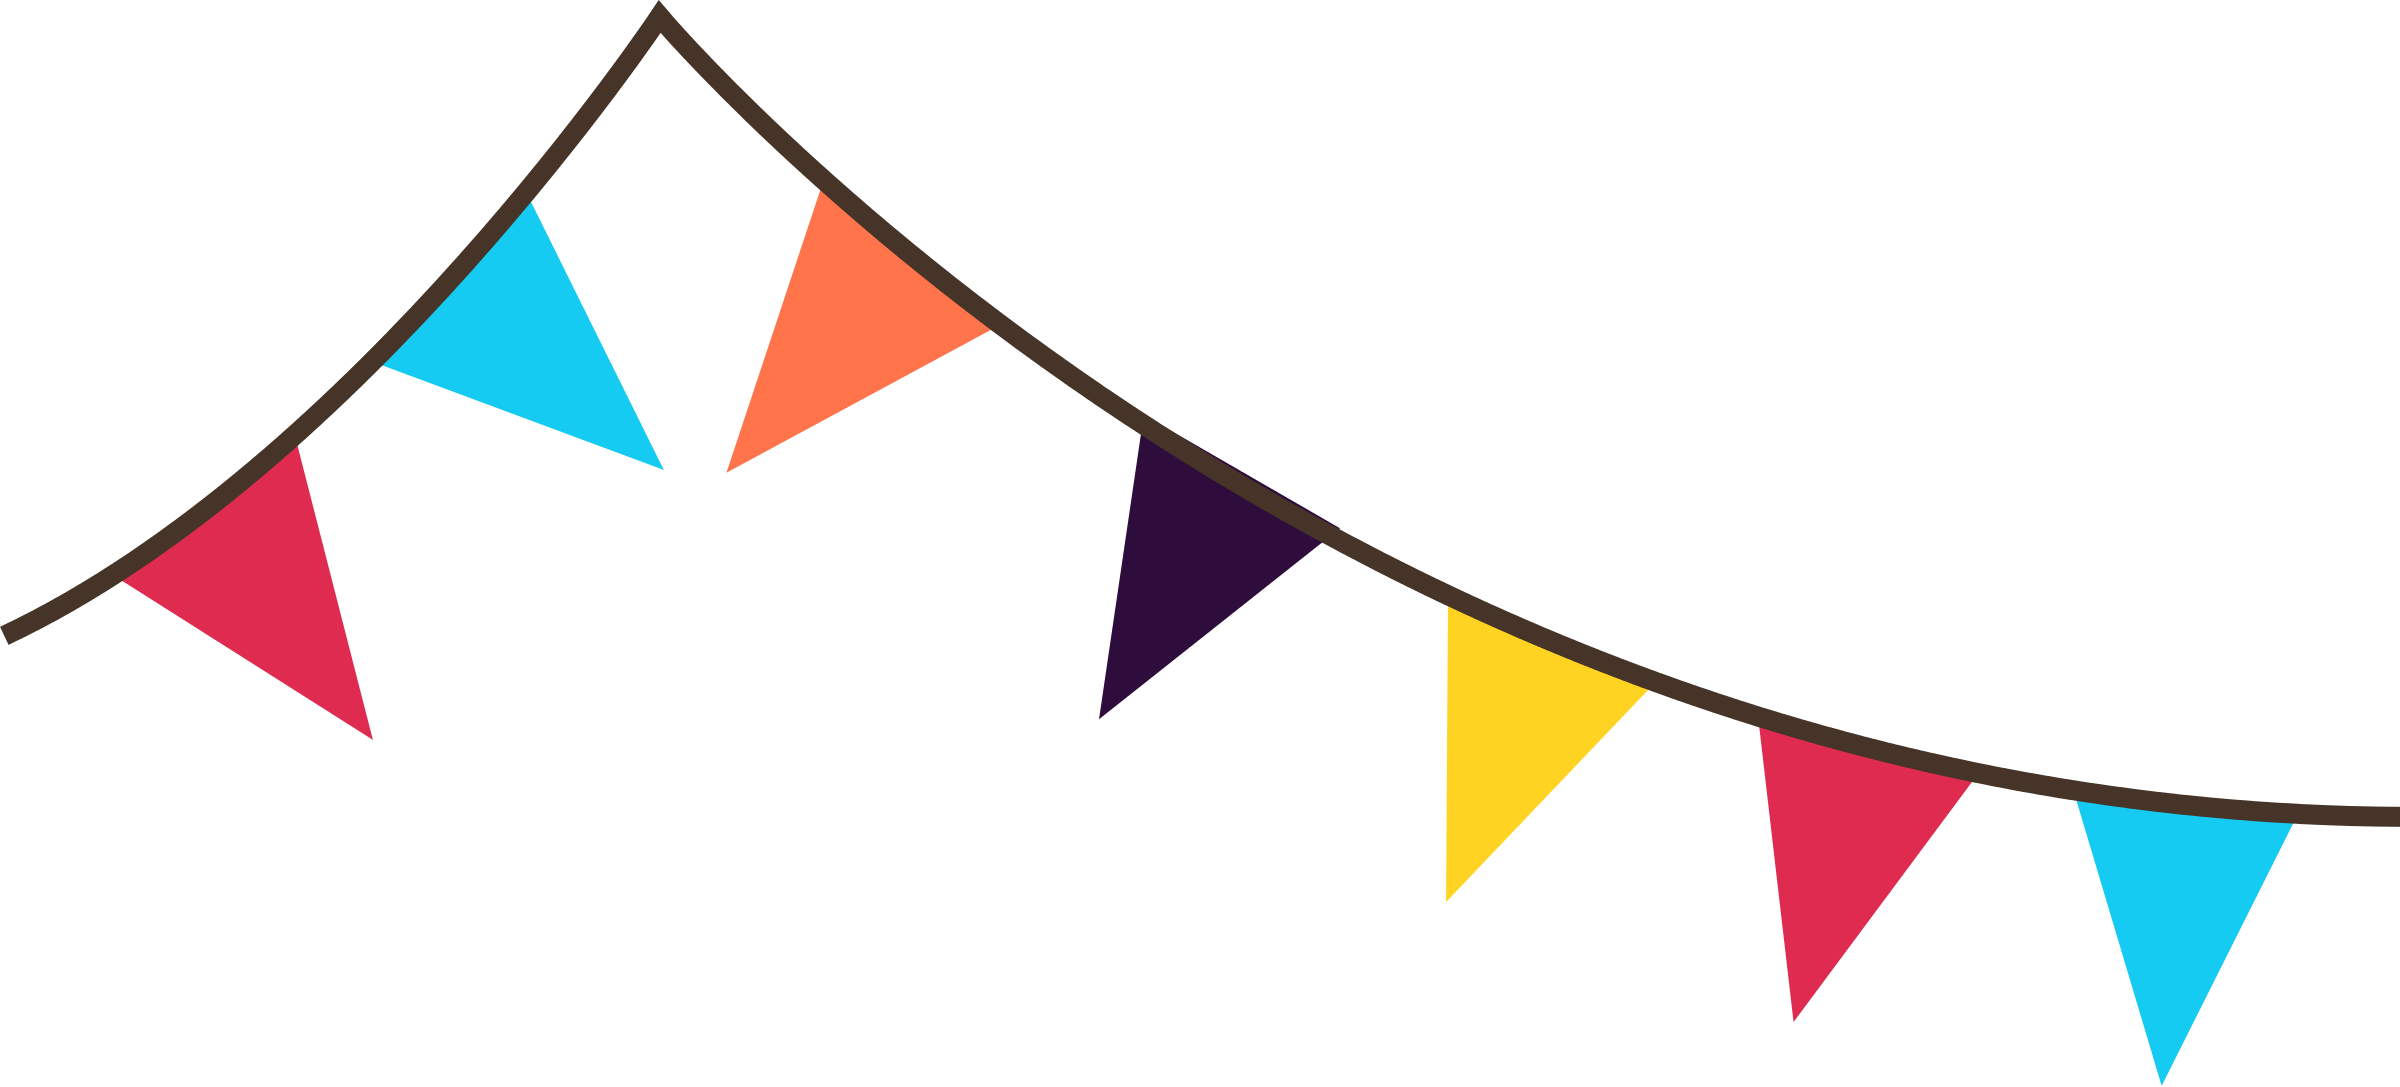 Free carnival flag cliparts. Divider clipart banner